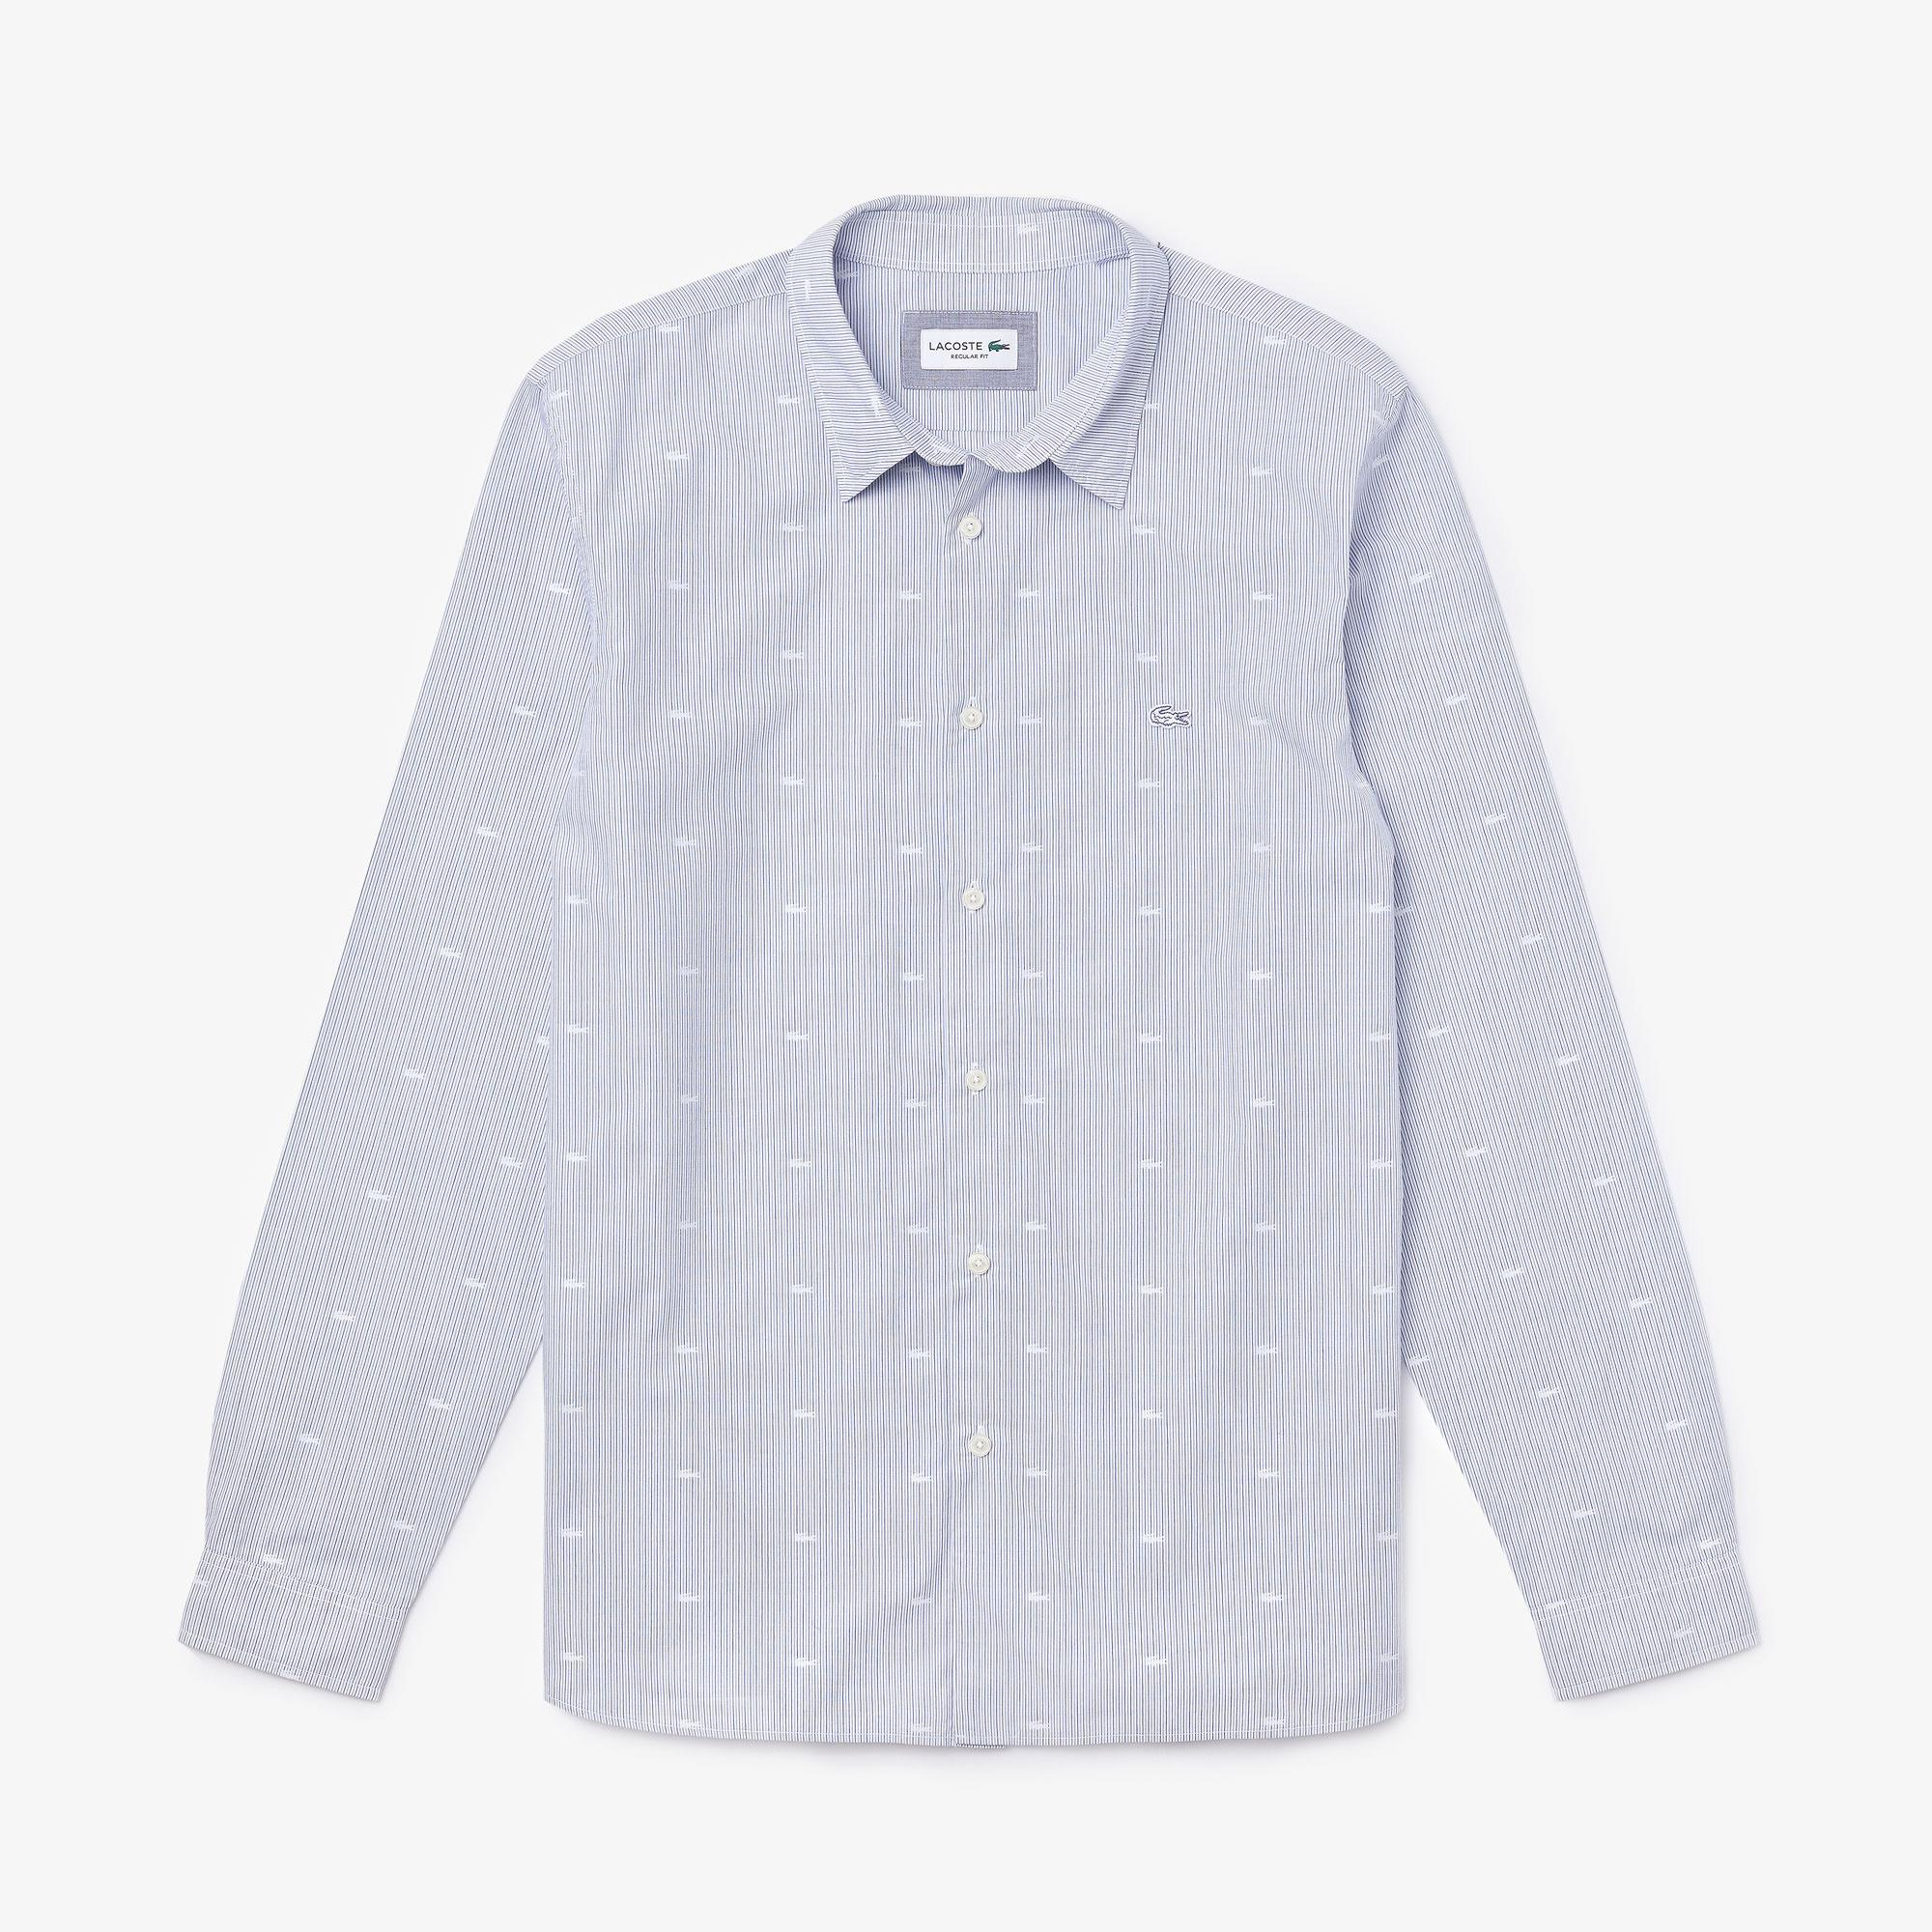 Lacoste Men's Crocodile Print Poplin Shirt